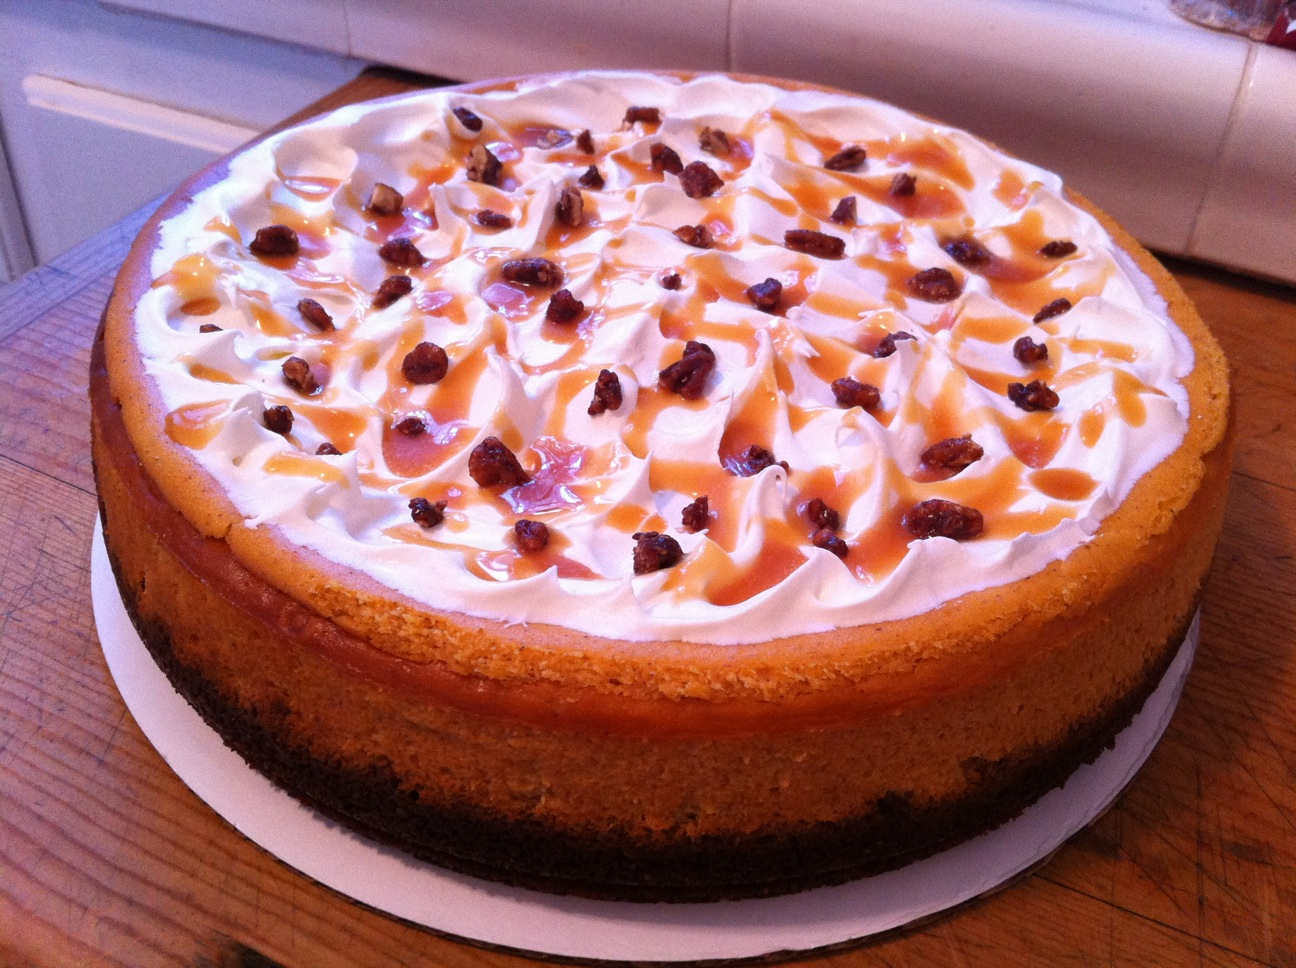 Topped with low-fat whipped cream, candied pecan pieces and drizzled ...